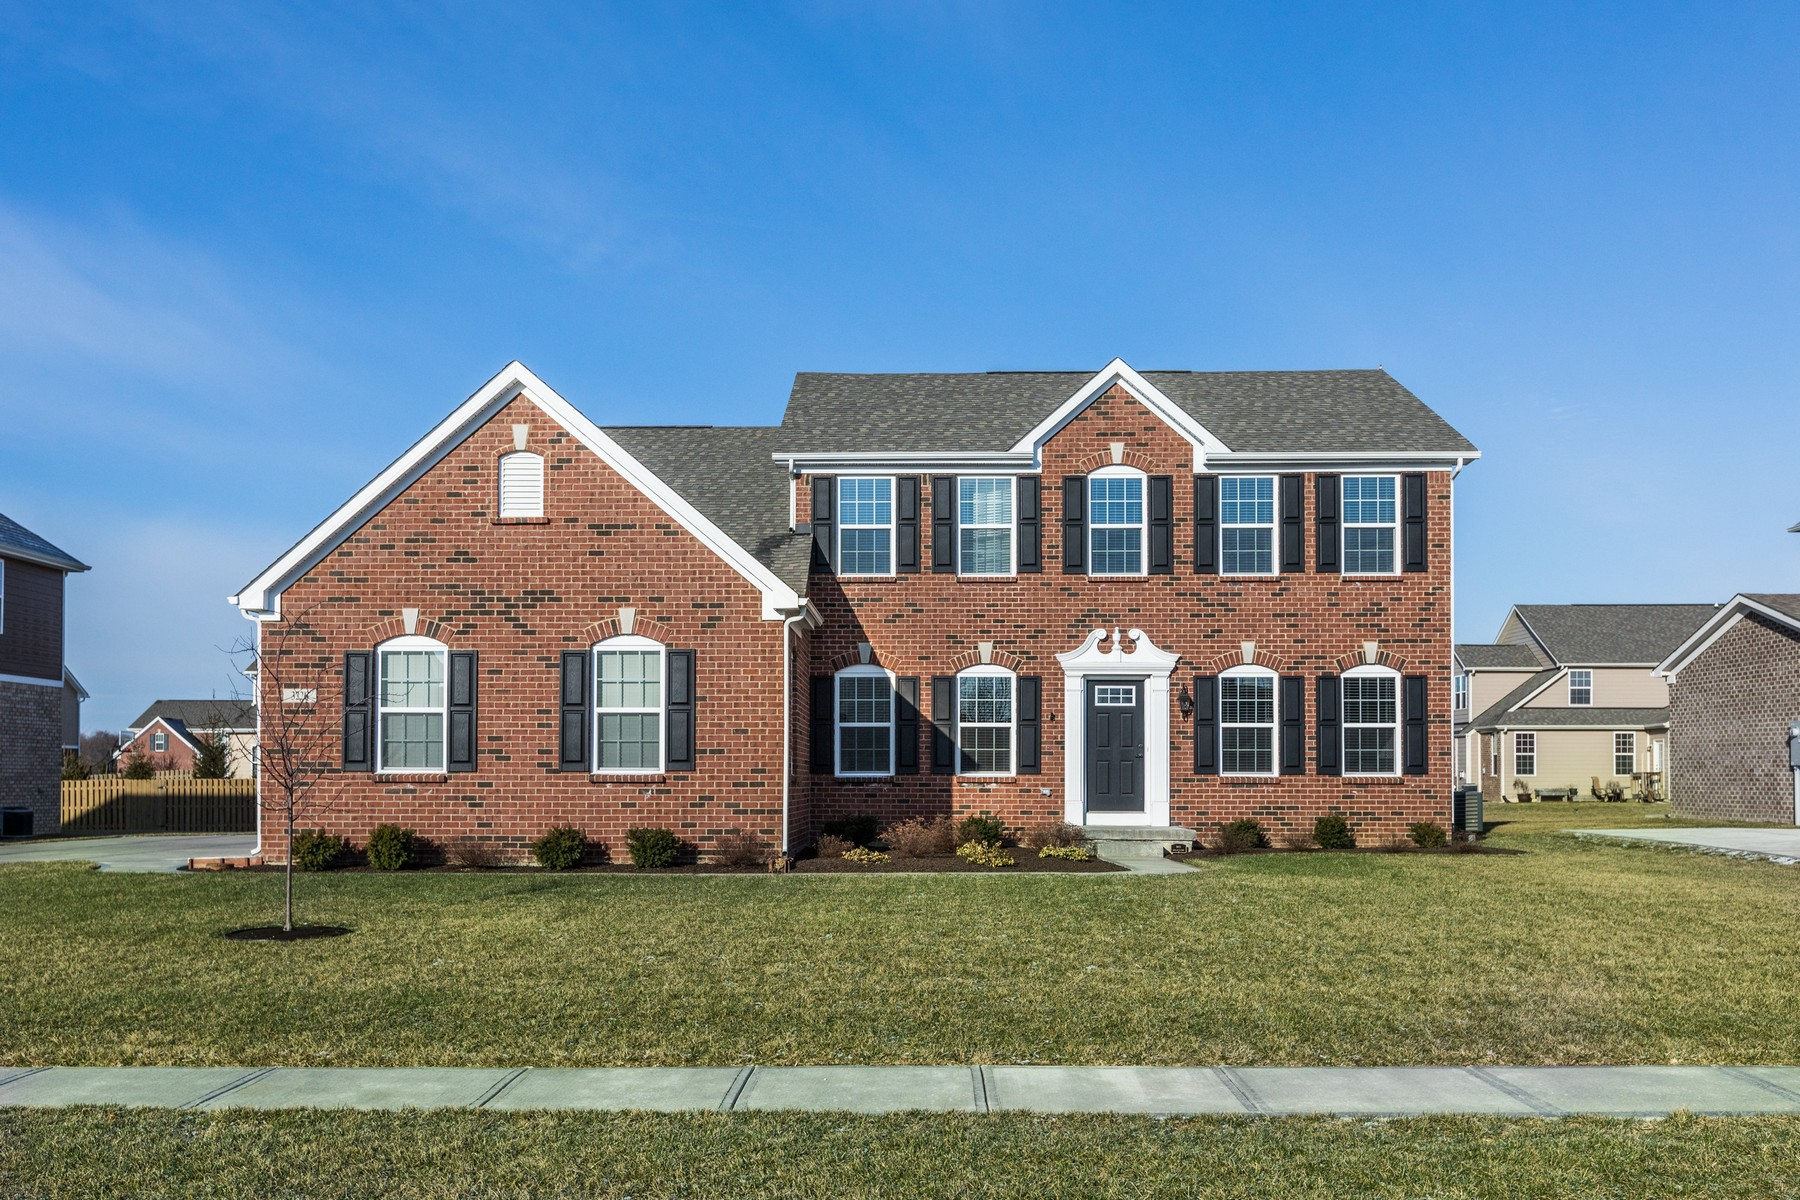 Single Family Home for Sale at Pristine 4 Bedroom Home in Zionsville 3226 Purple Ash Drive Zionsville, Indiana 46077 United States